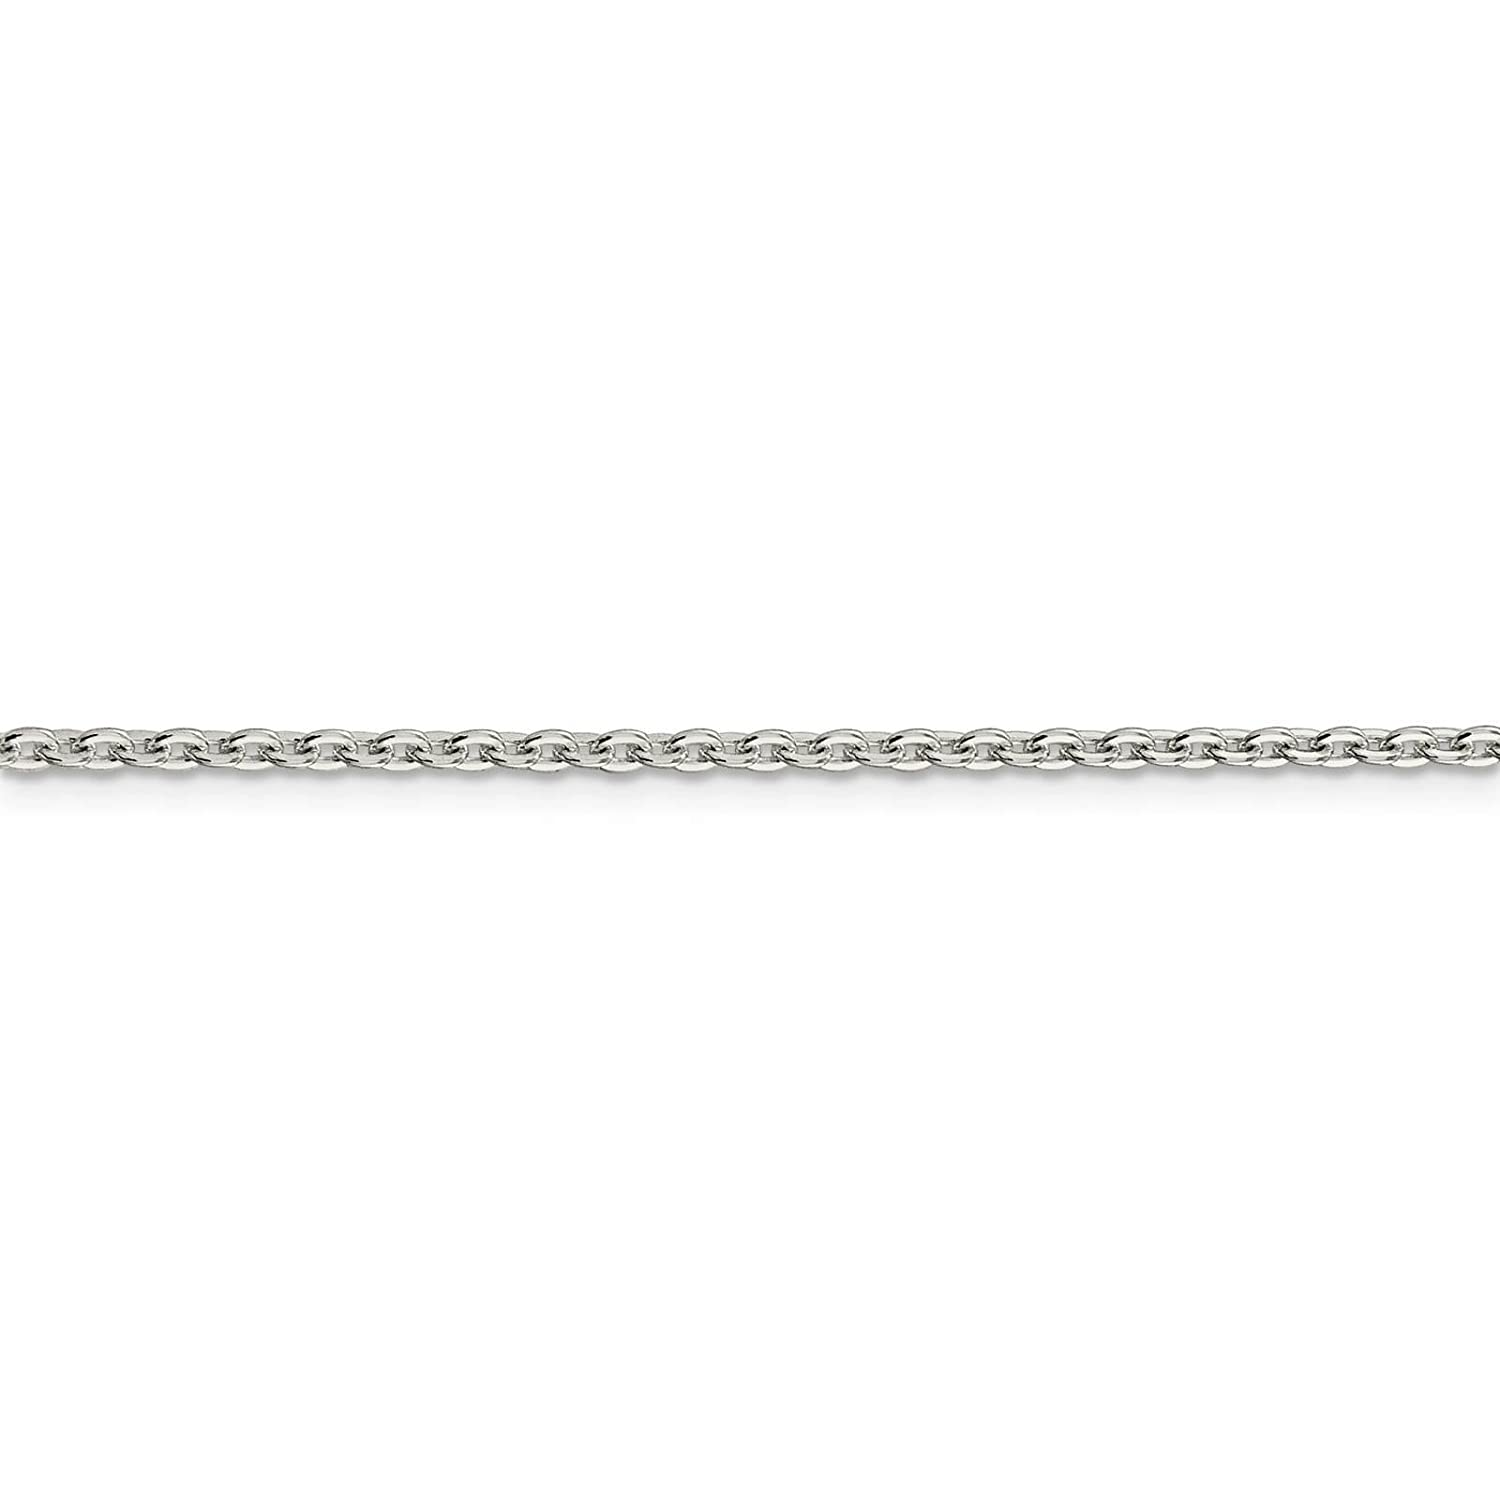 925 Sterling Silver 2mm Flat Cable Link Chain Necklace 16-24